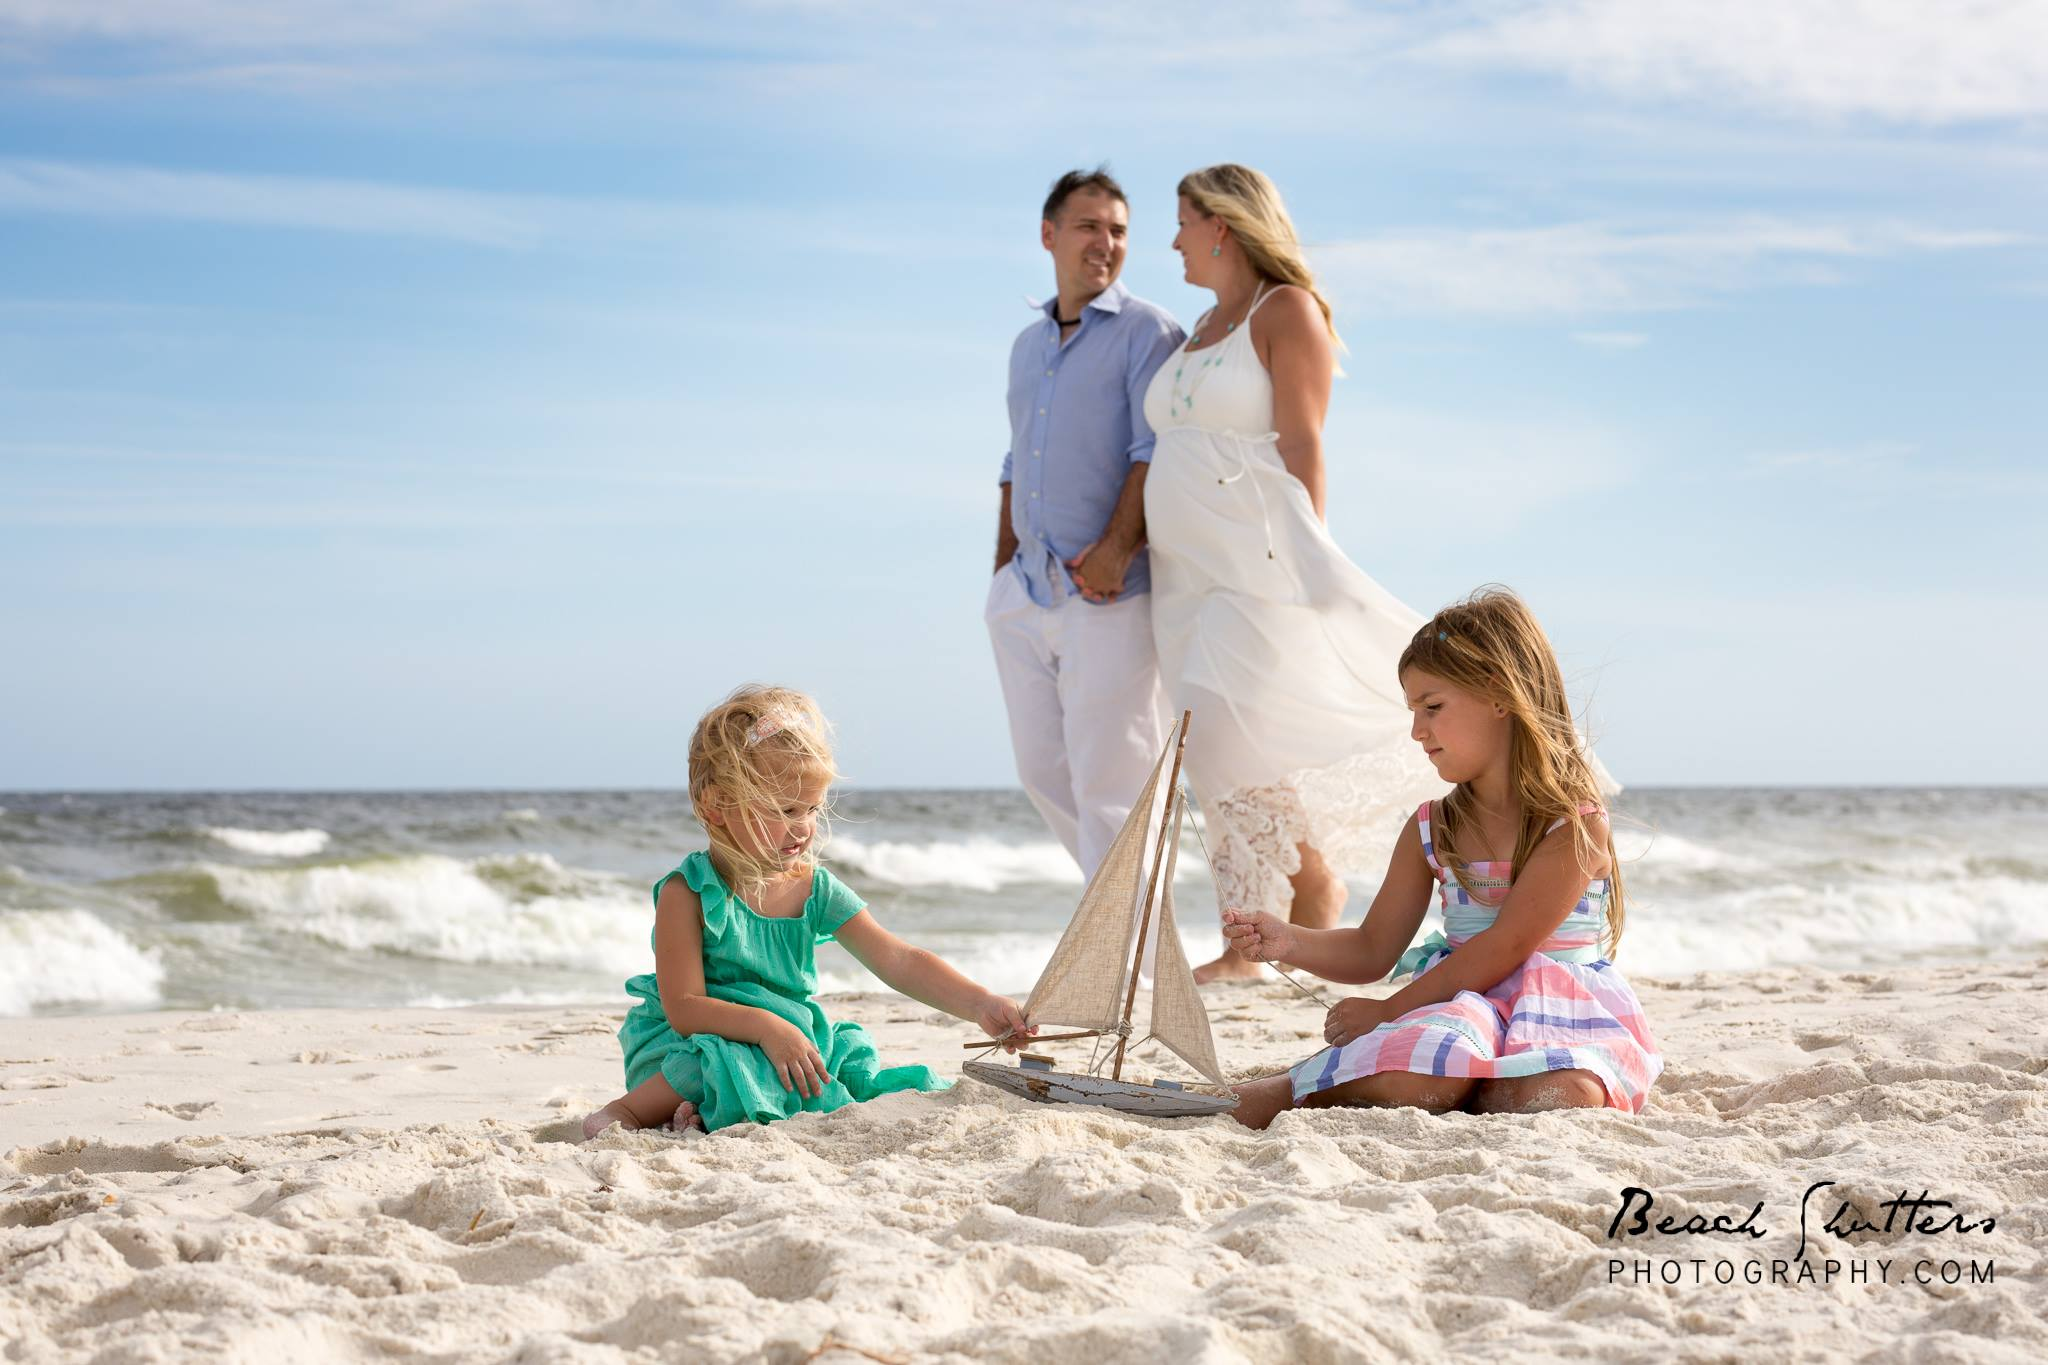 Spring Break Photo Session family beach portrait photographer in Orange Beach Alabama